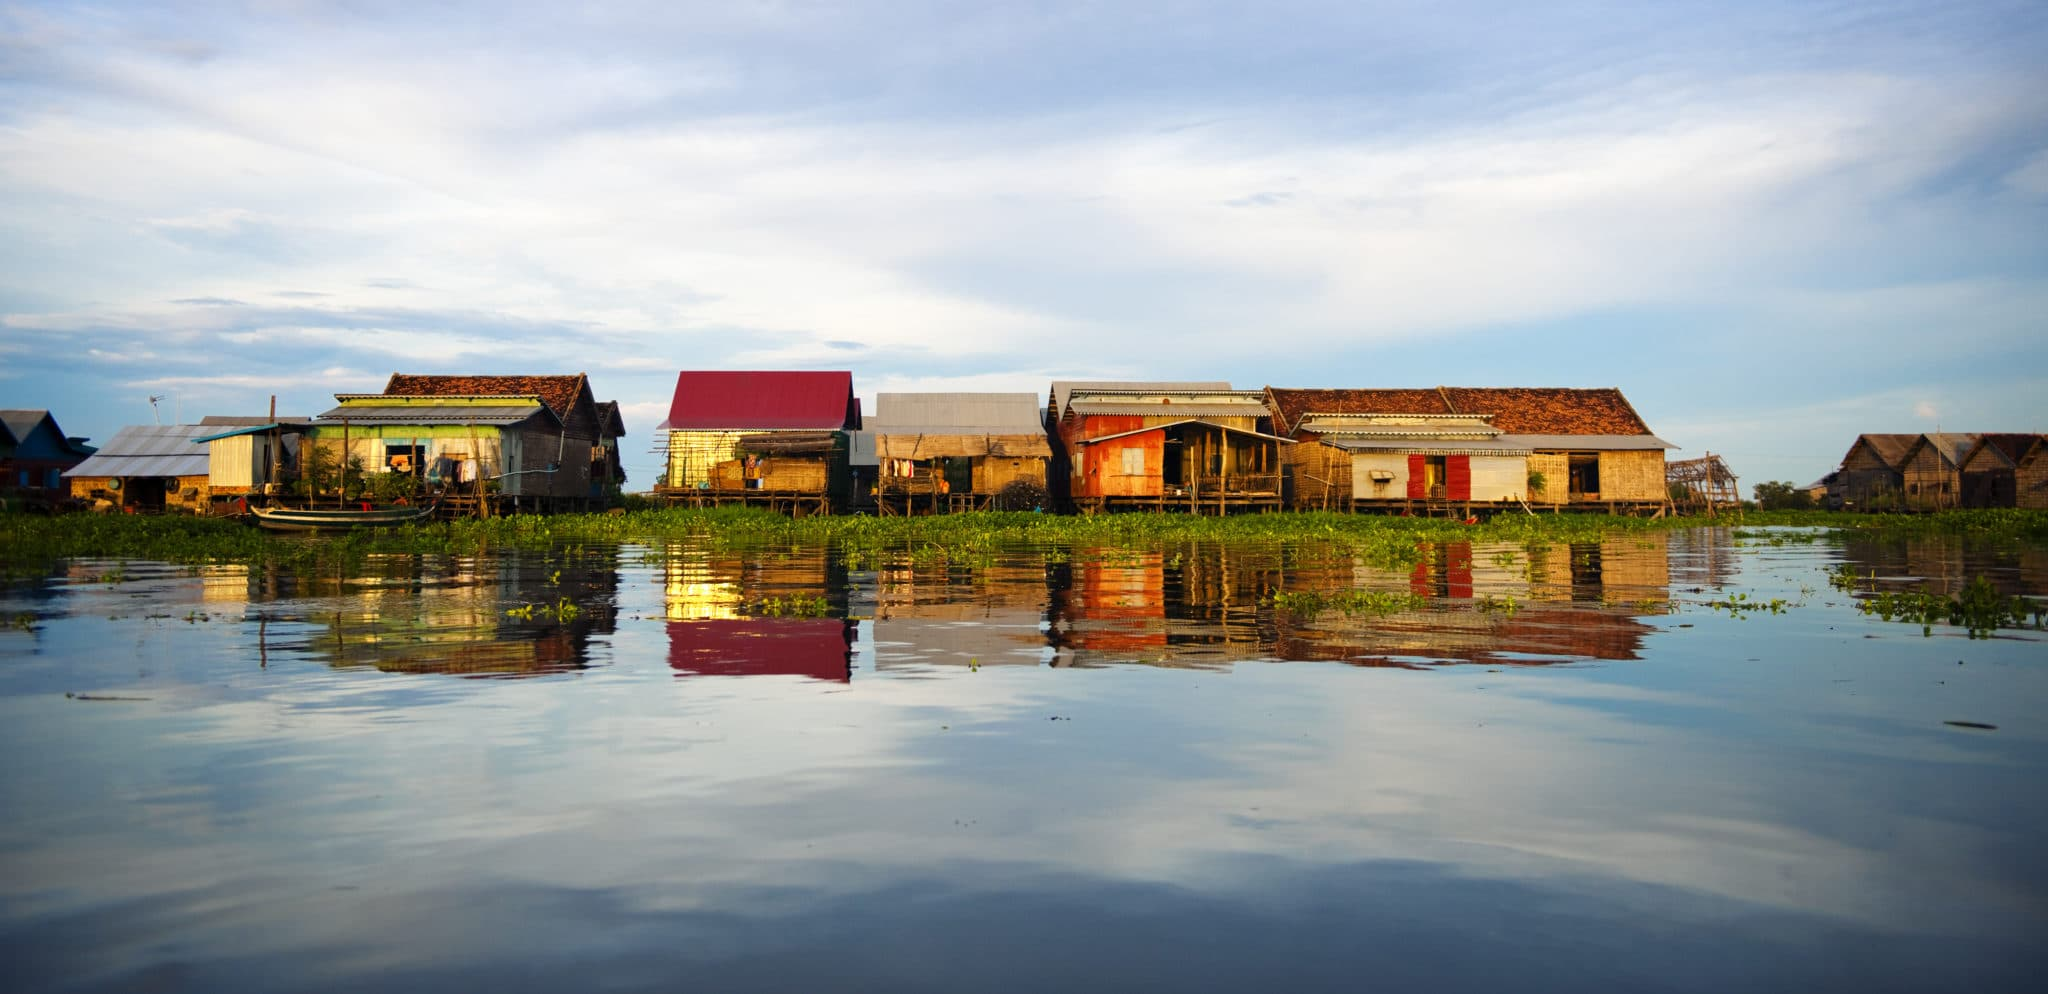 Collection of Floating Homes in Kompong Khleang.